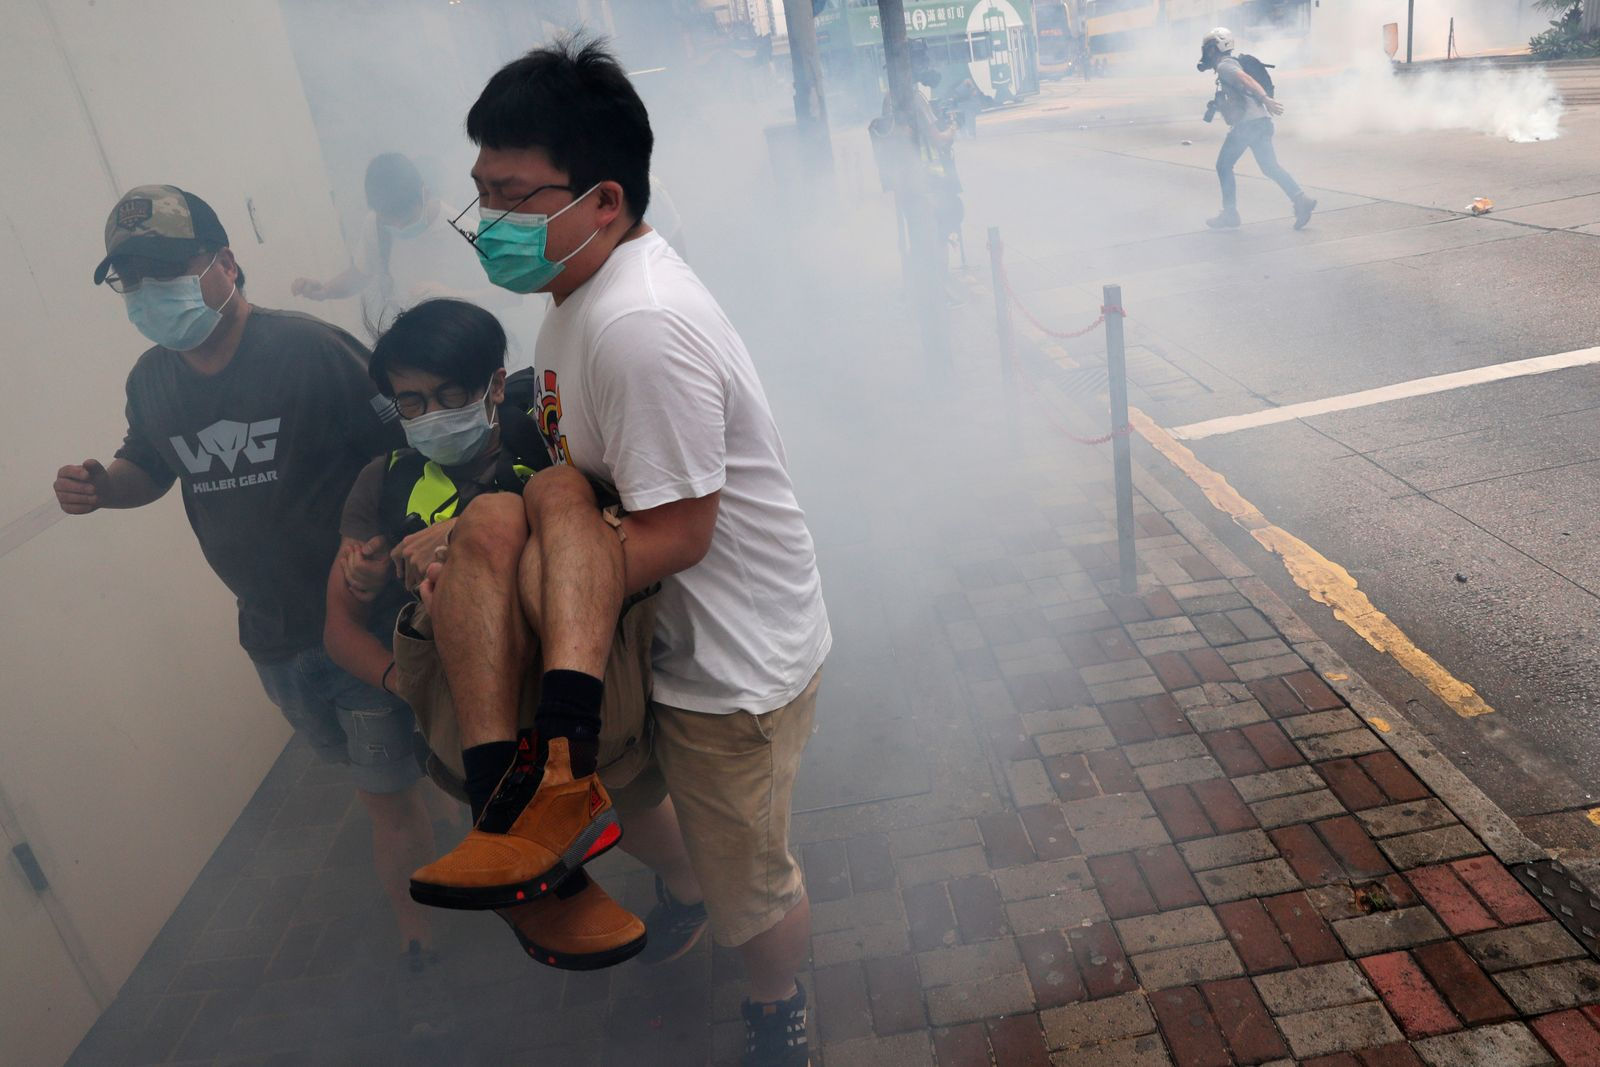 Anti-government protesters run away from tear gas during a march against Beijing?s plans to impose national security legislation in Hong Kong